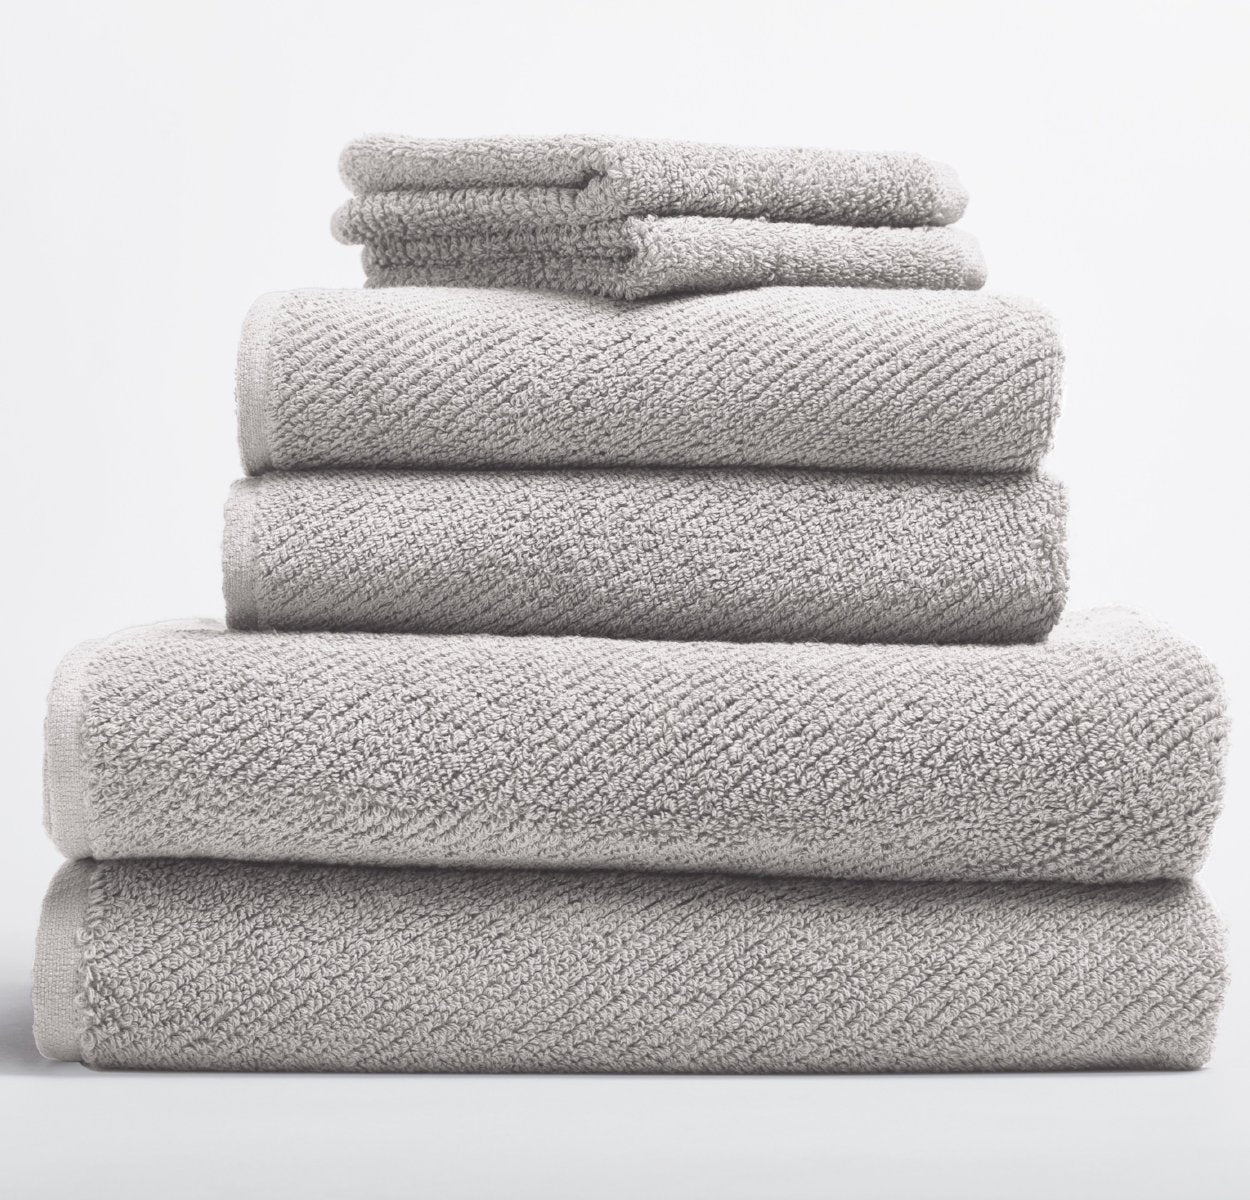 Airweight Organic Towel Set - Fog (6 pc)